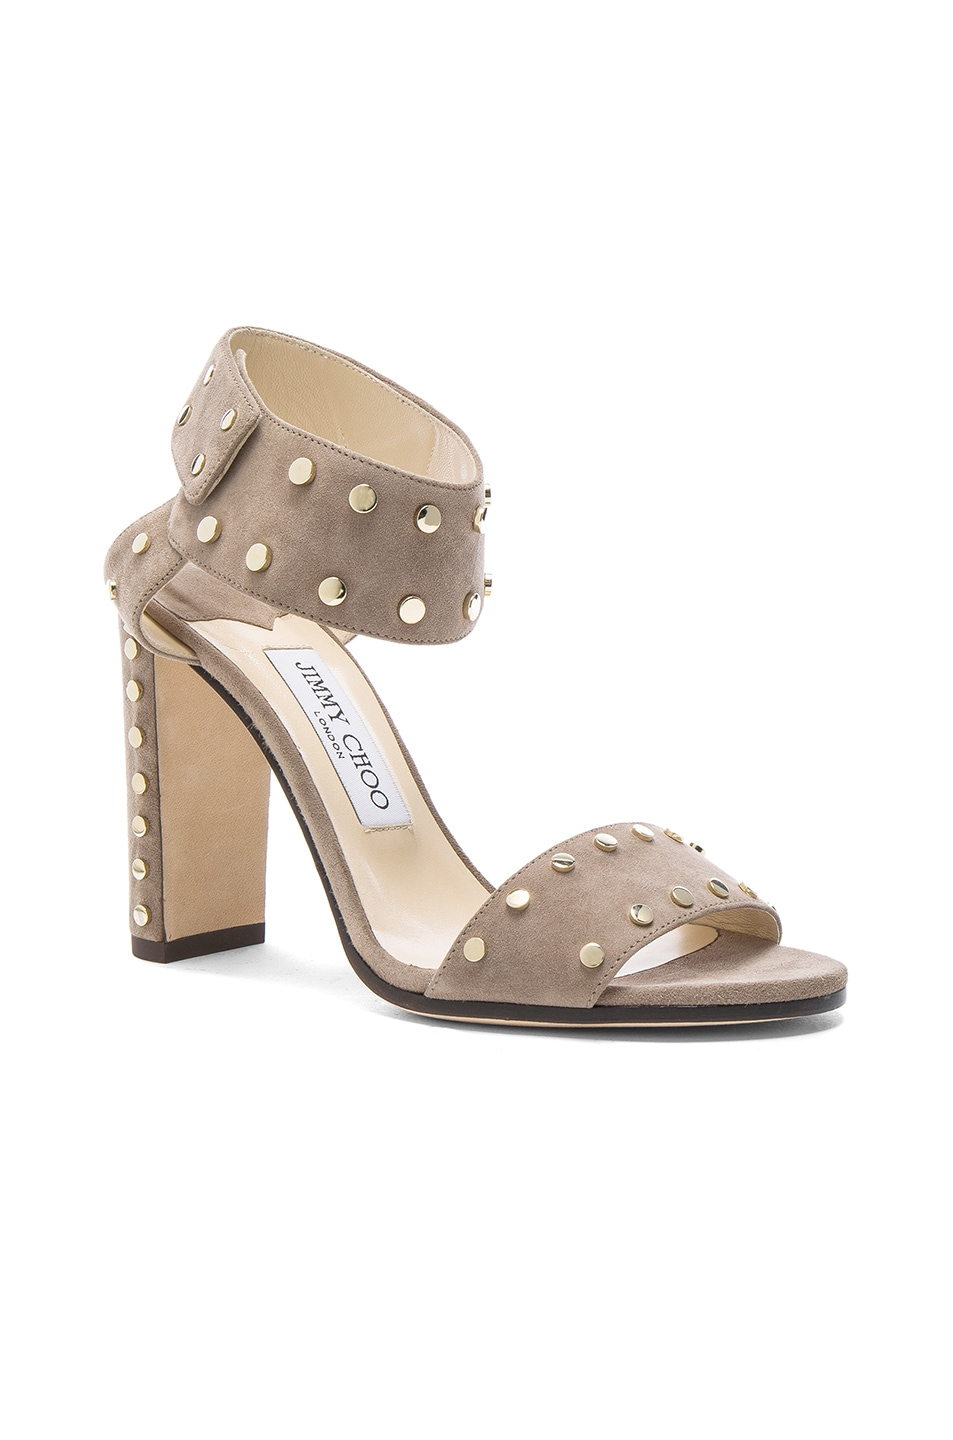 JIMMY CHOO Veto Heel in Light Mocha & Gold